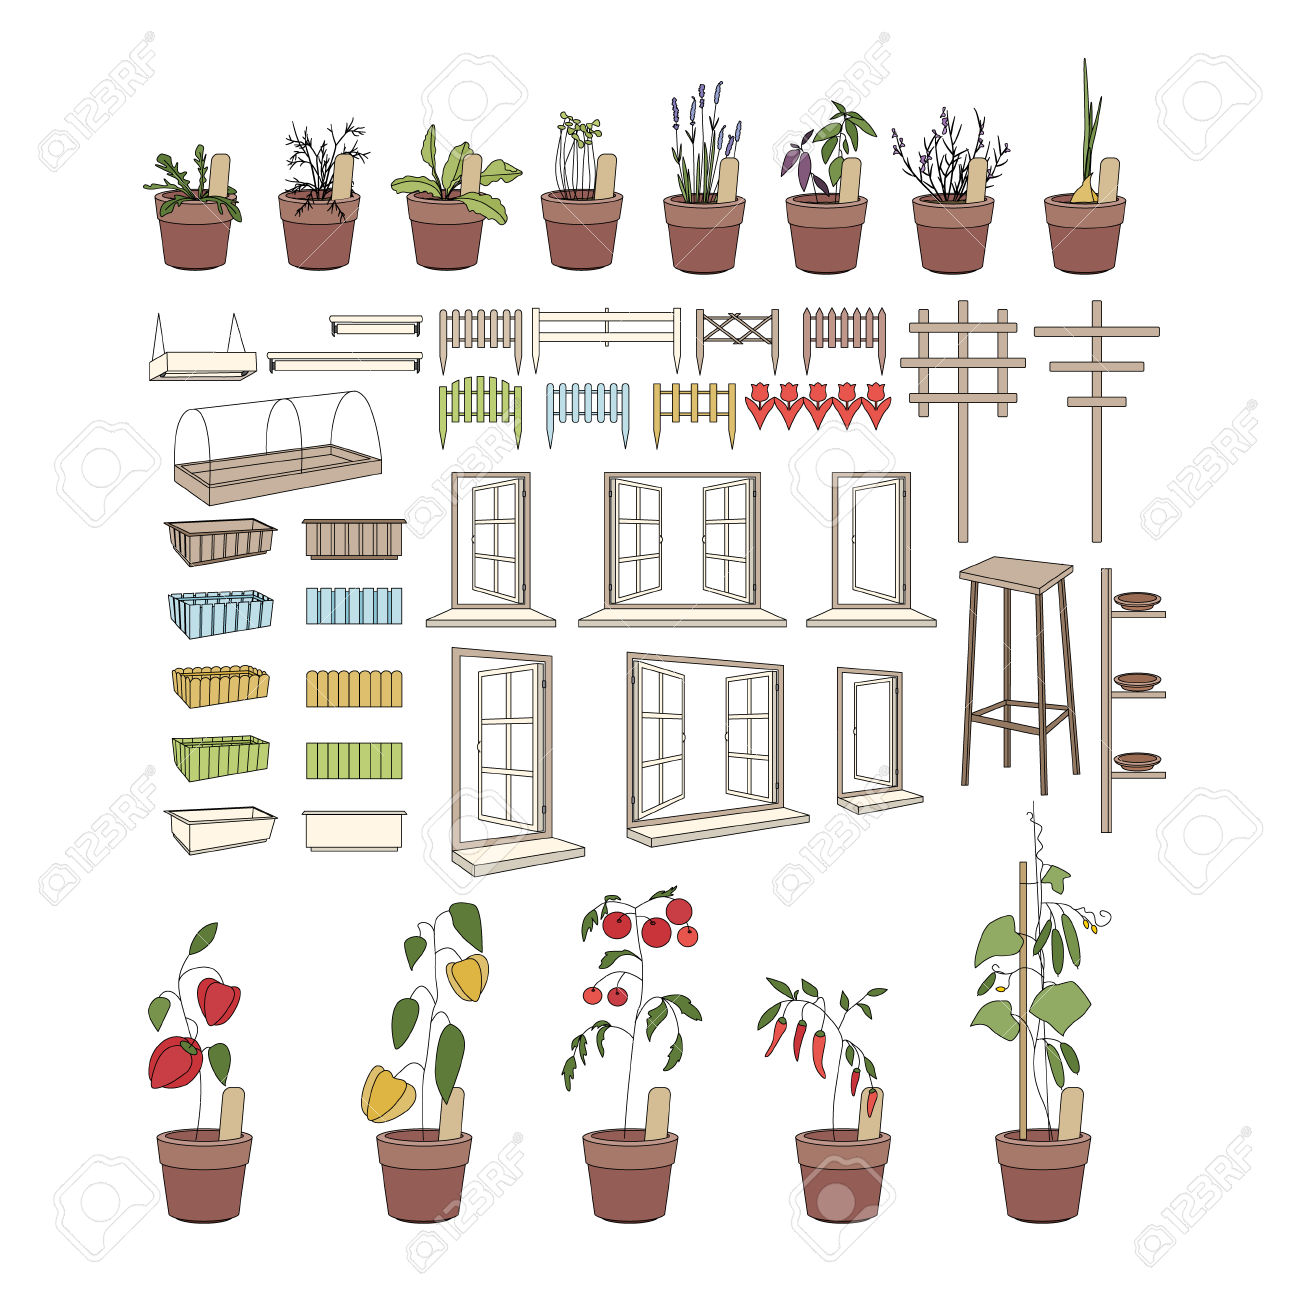 Flower Pots With Herbs And Vegetables. Gardening Tools. Plants.